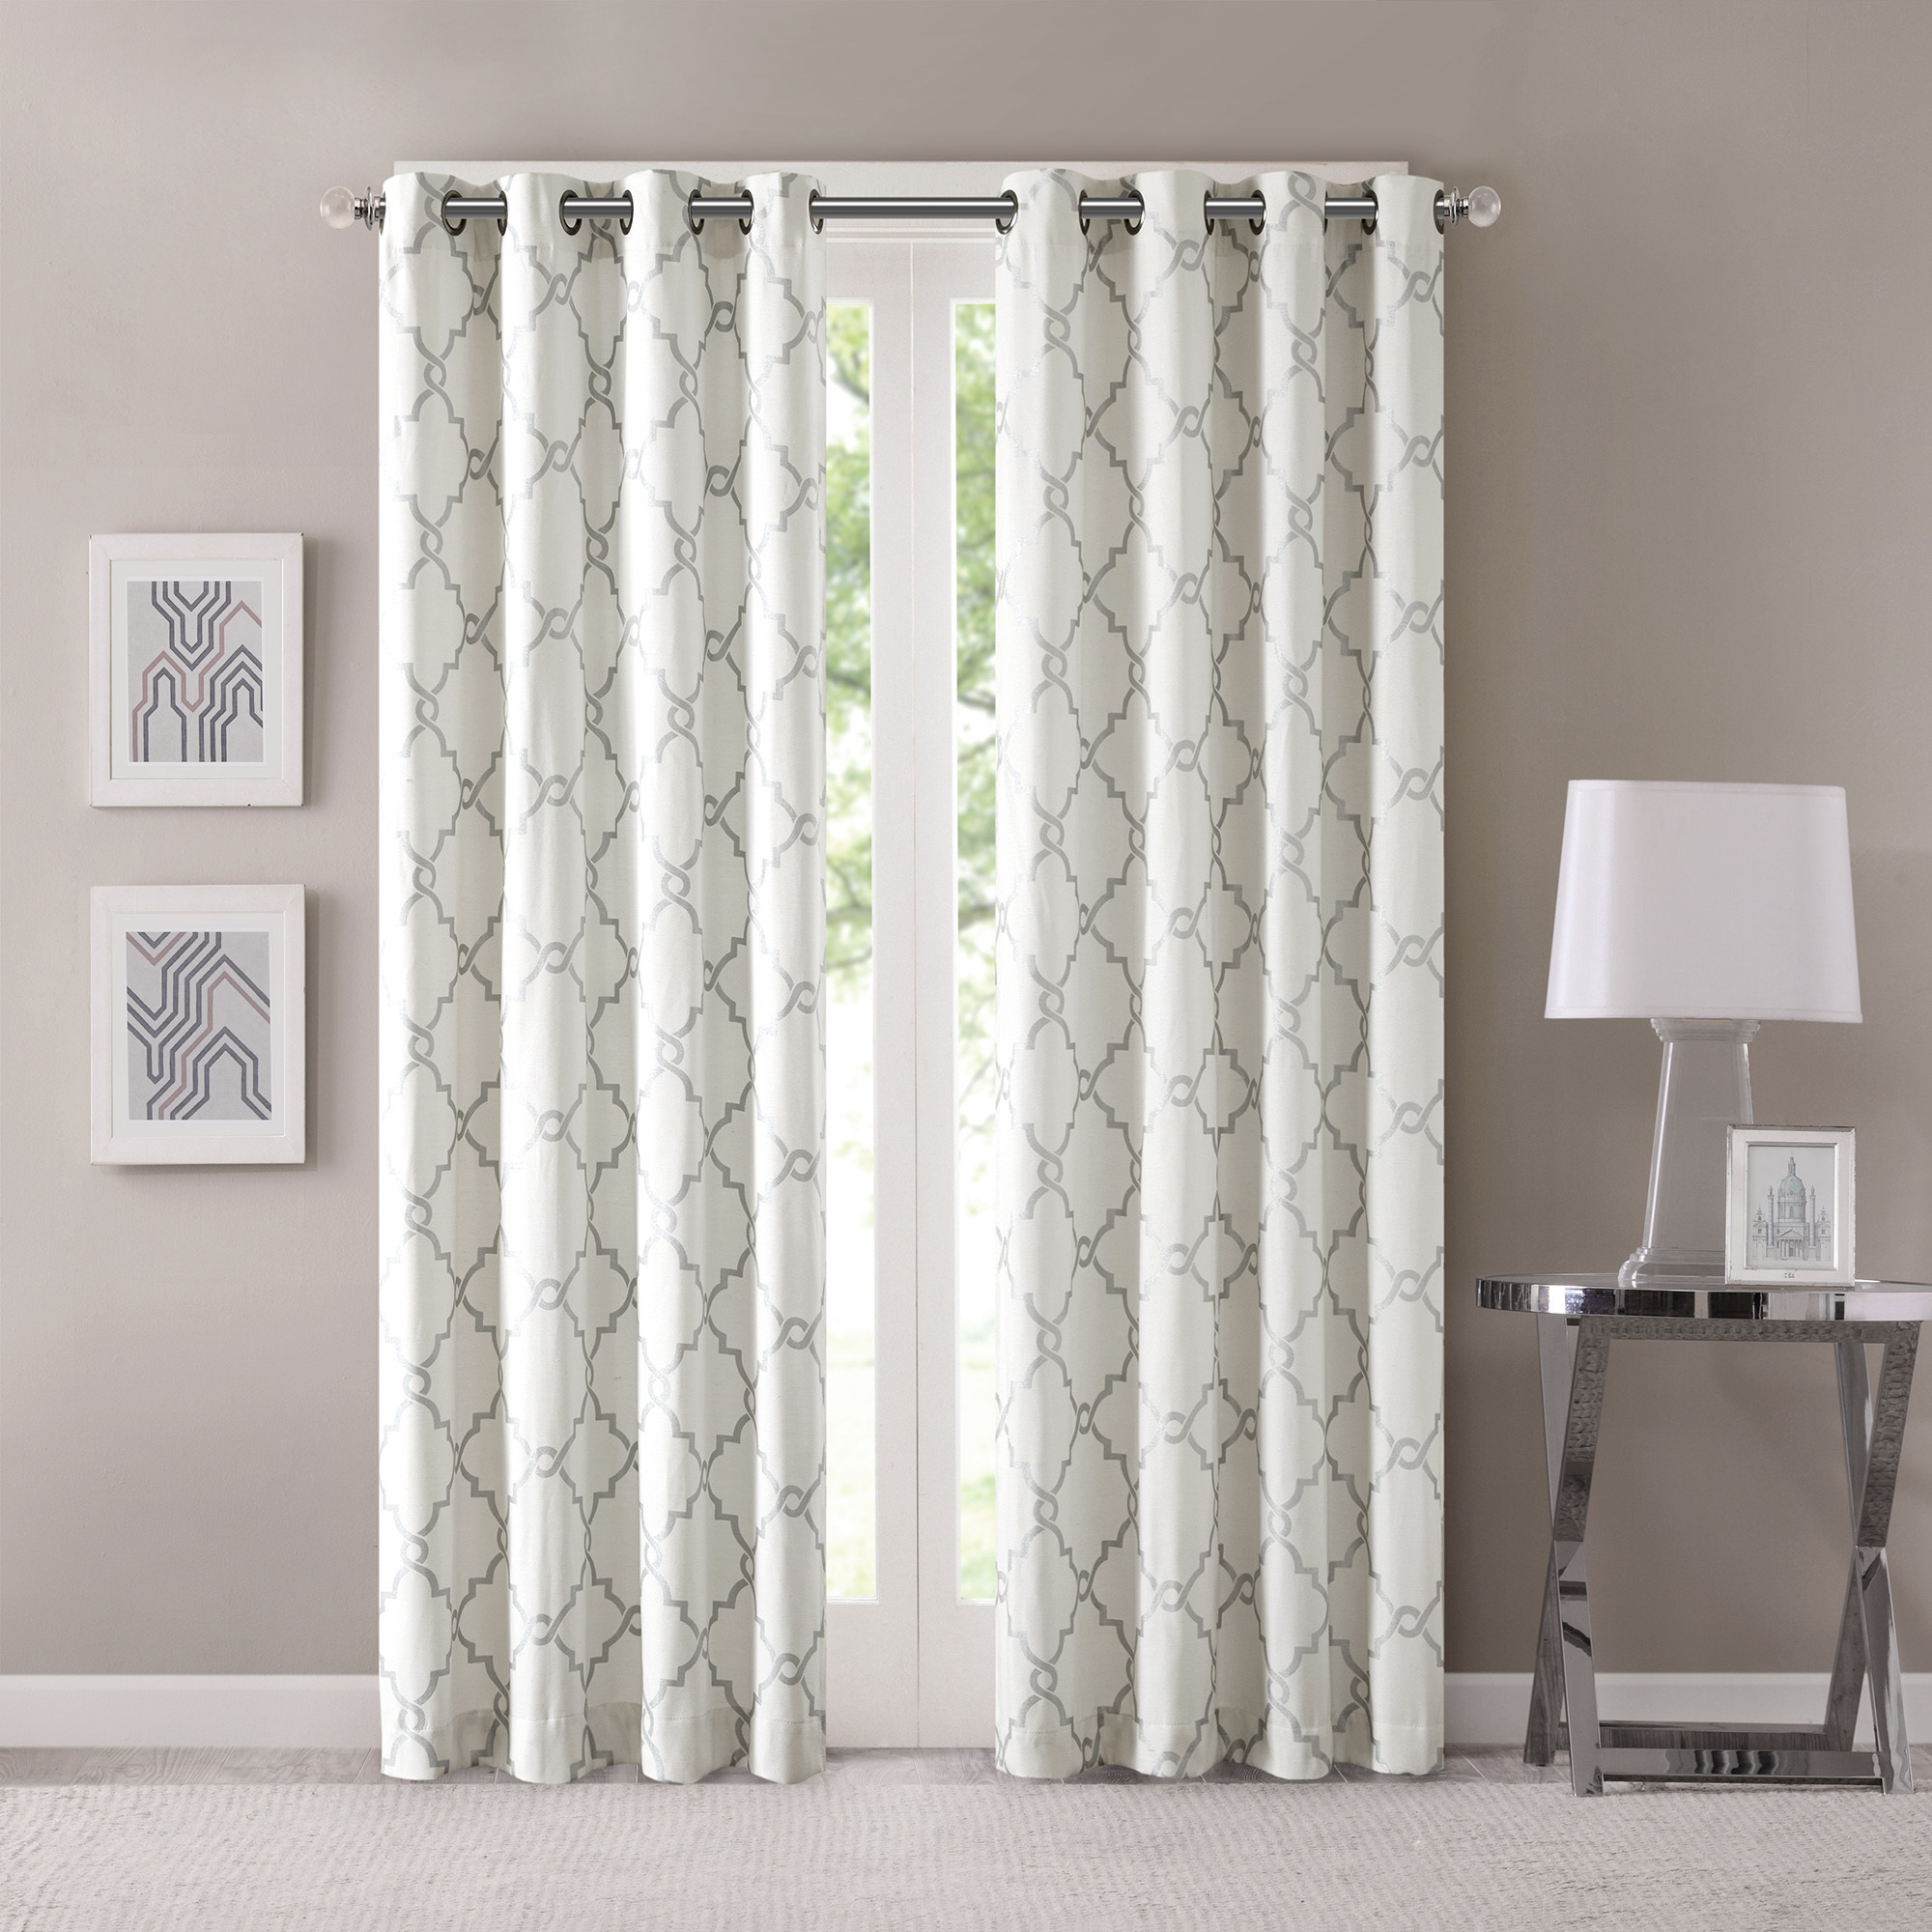 Alluring Photograph Utteramazement Cheap Blinds Charismatic Pertaining To Pattern Curtain Panels (Image 1 of 25)